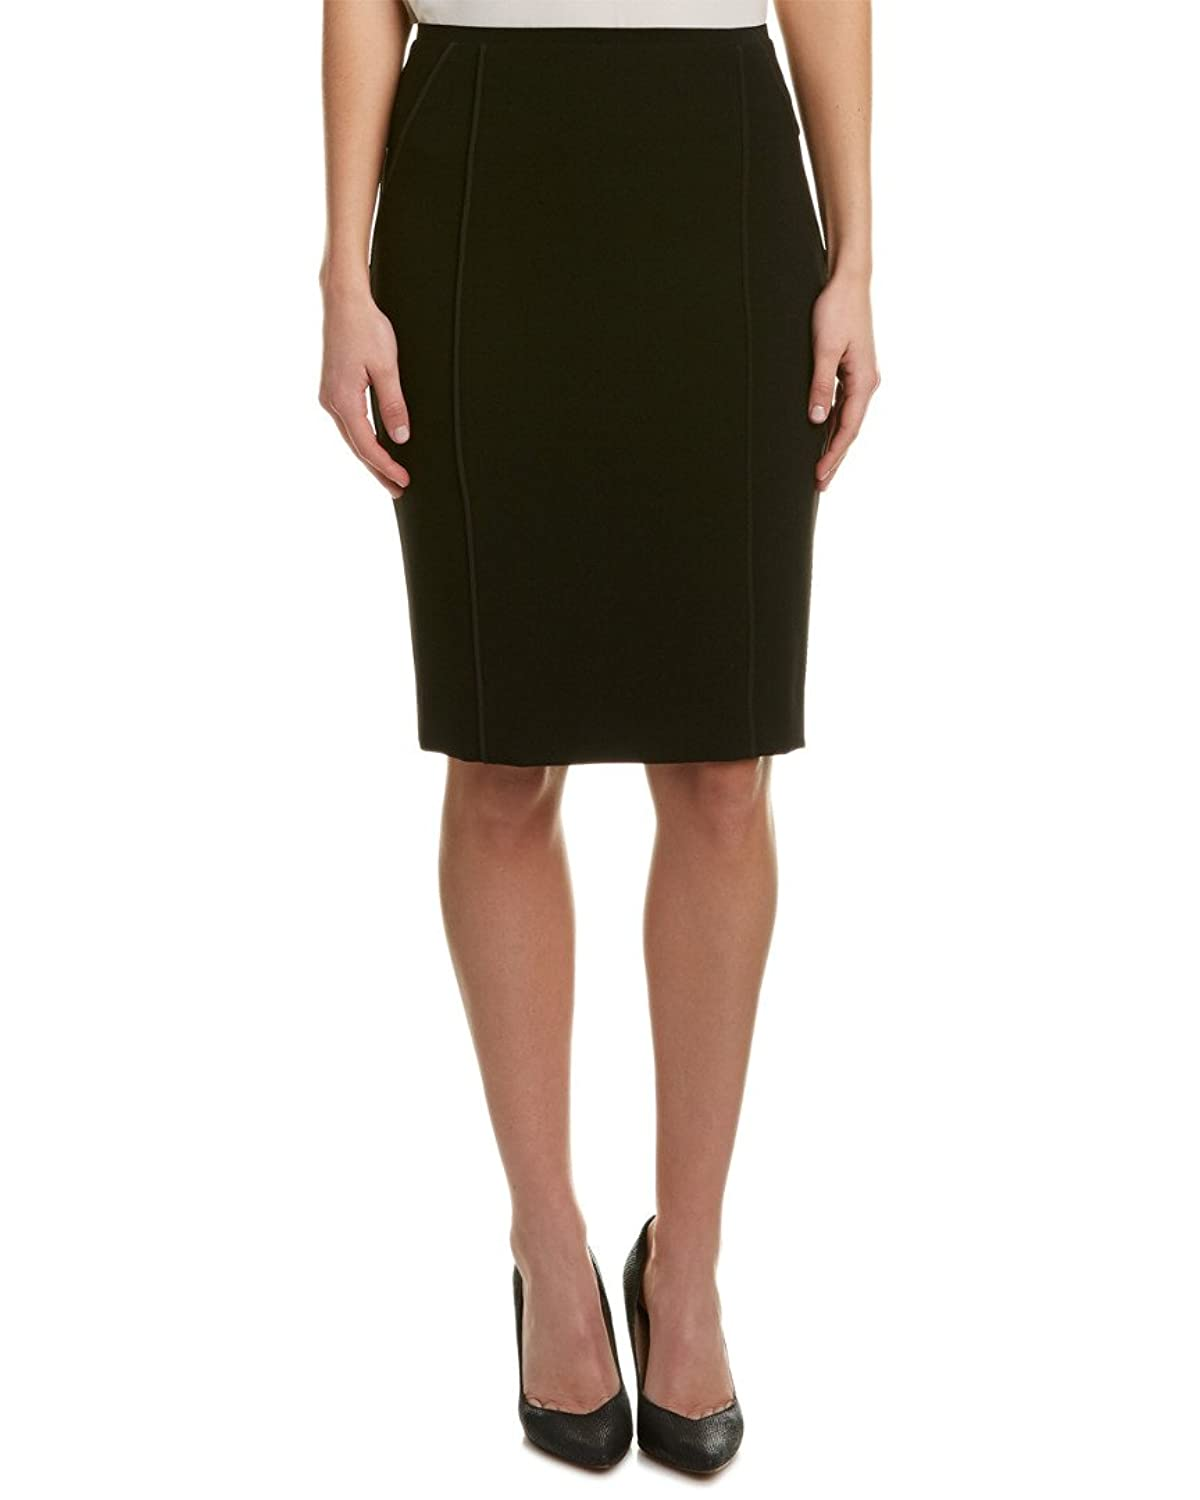 Elie Tahari Pencil Skirt